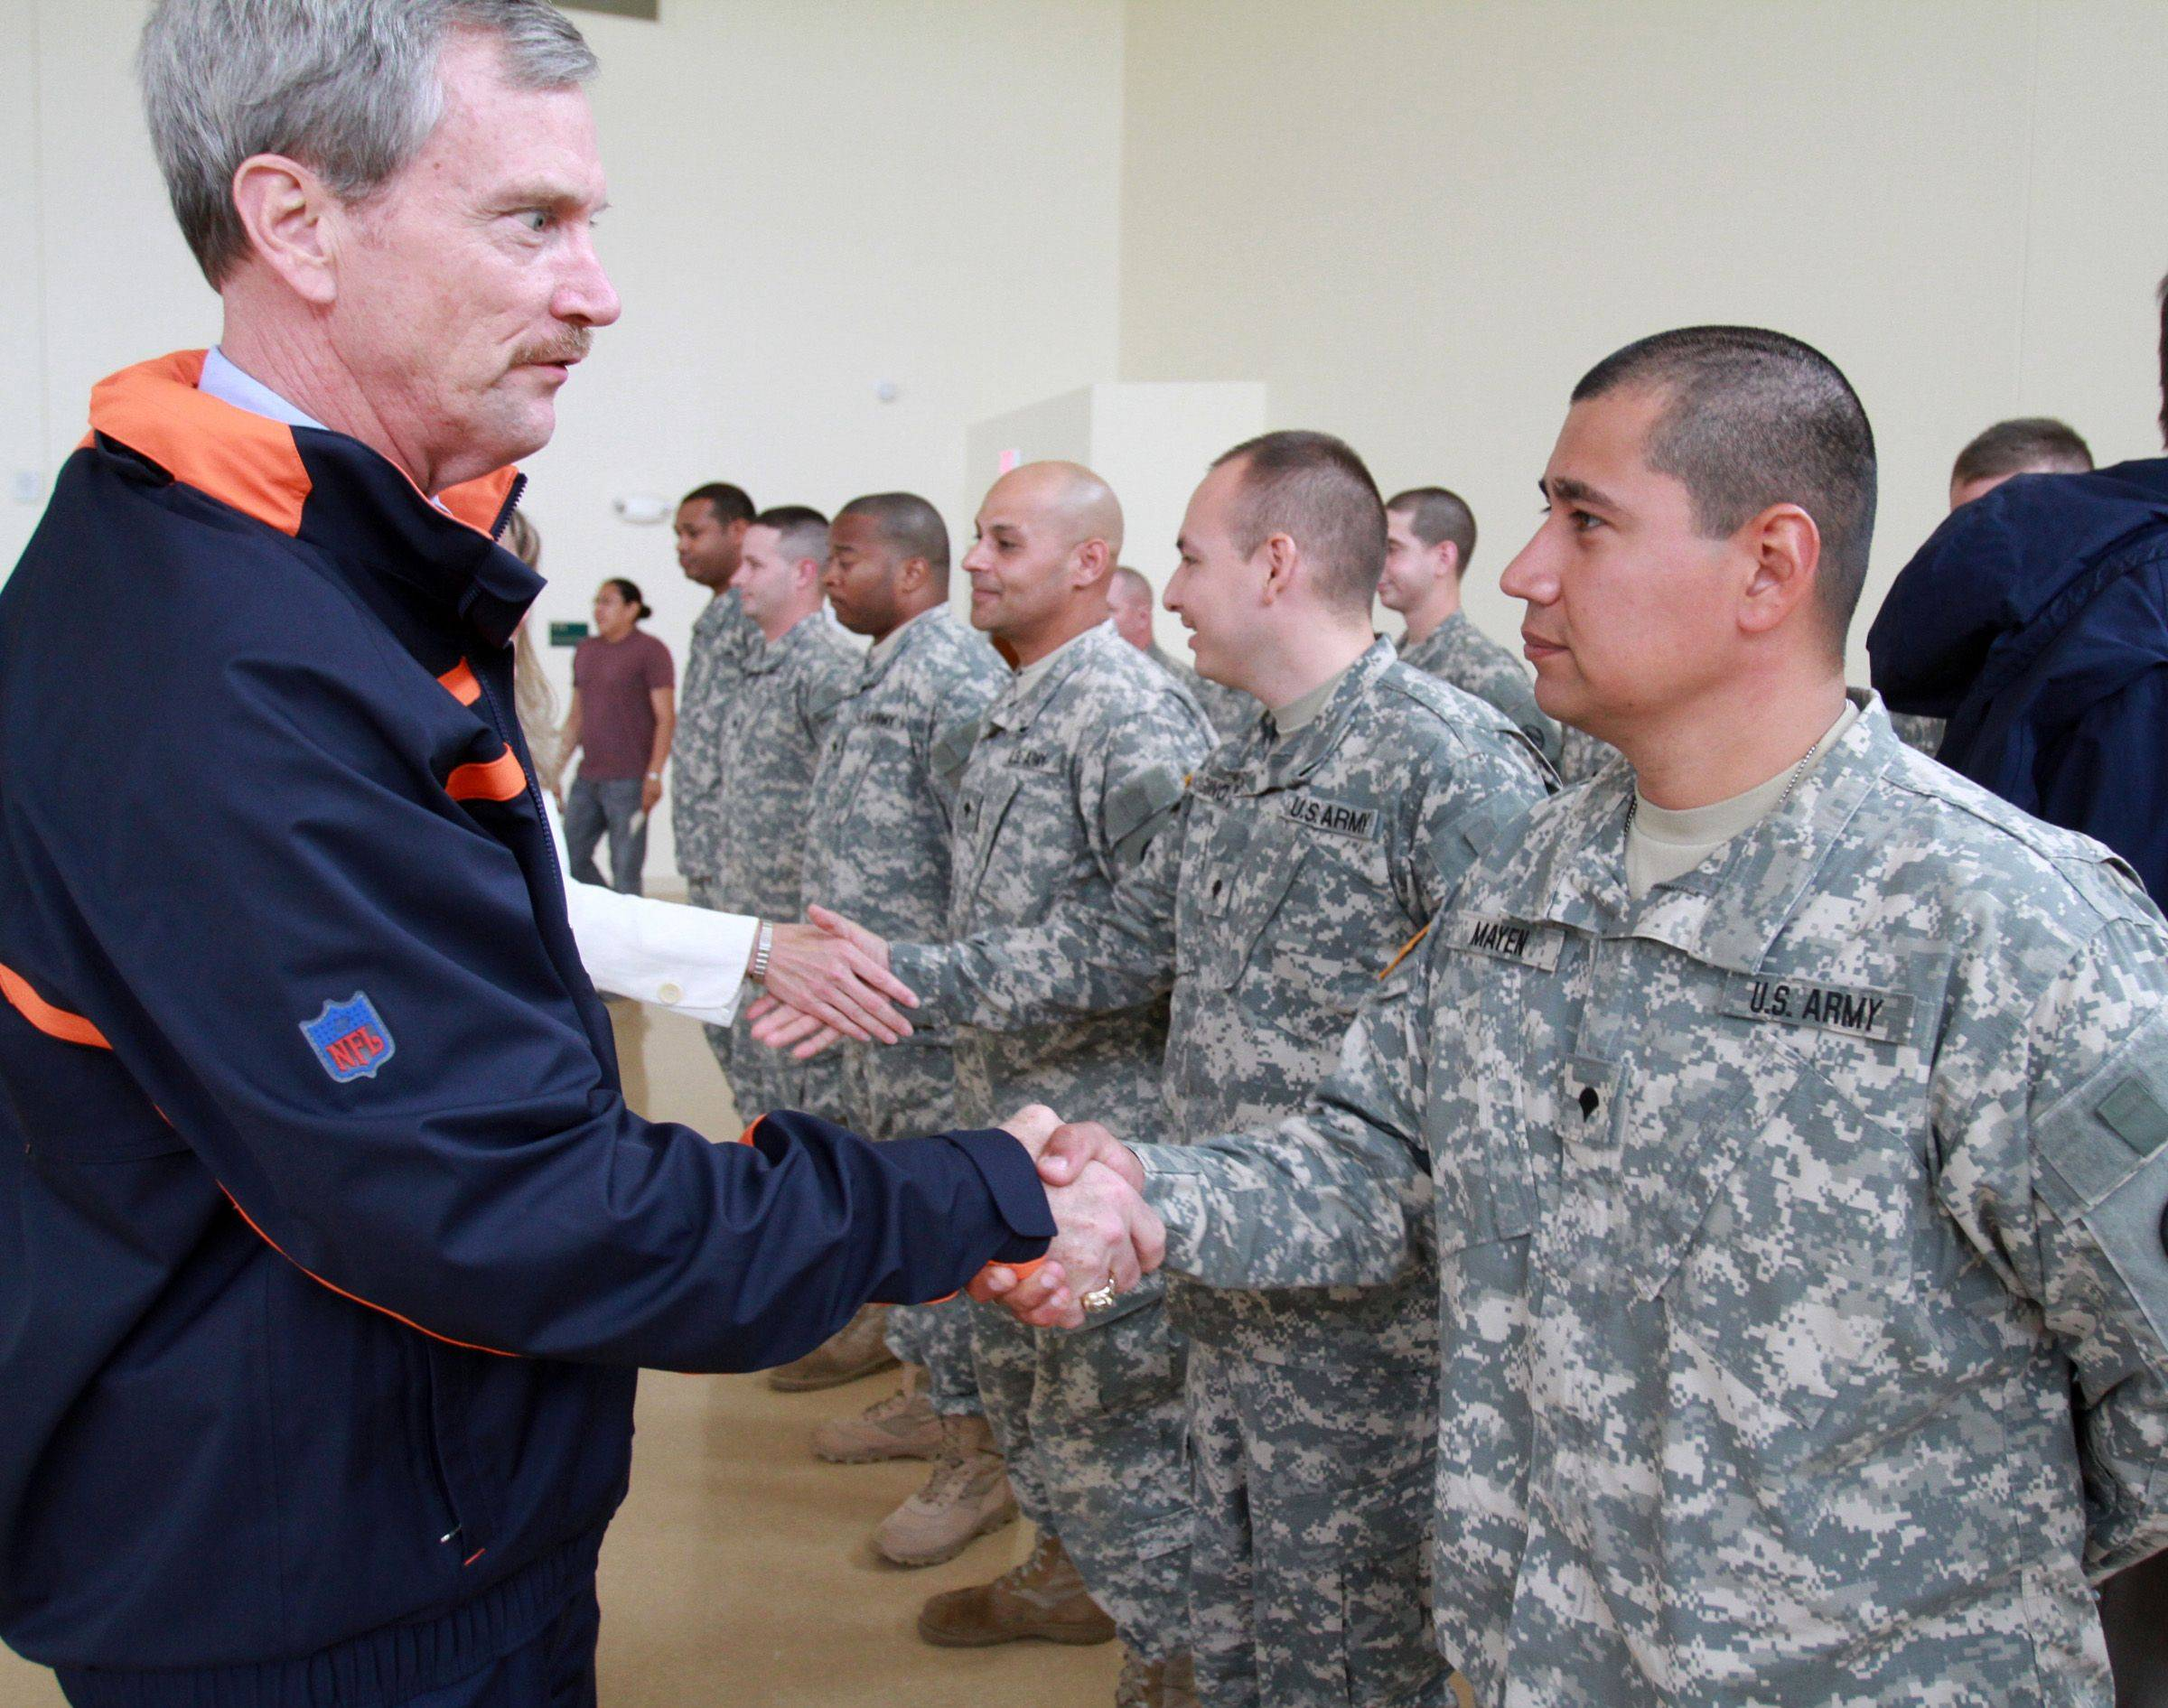 George McCaskey, chairman of the Chicago Bears, greets SPC Cesar Mayer of Elgin, a member of the Army Reserve 226th Port Management Team. McCaskey attended a farewell ceremony at Fort Sheridan on Thursday for the unit, which will spend the next year serving in Kuwait.